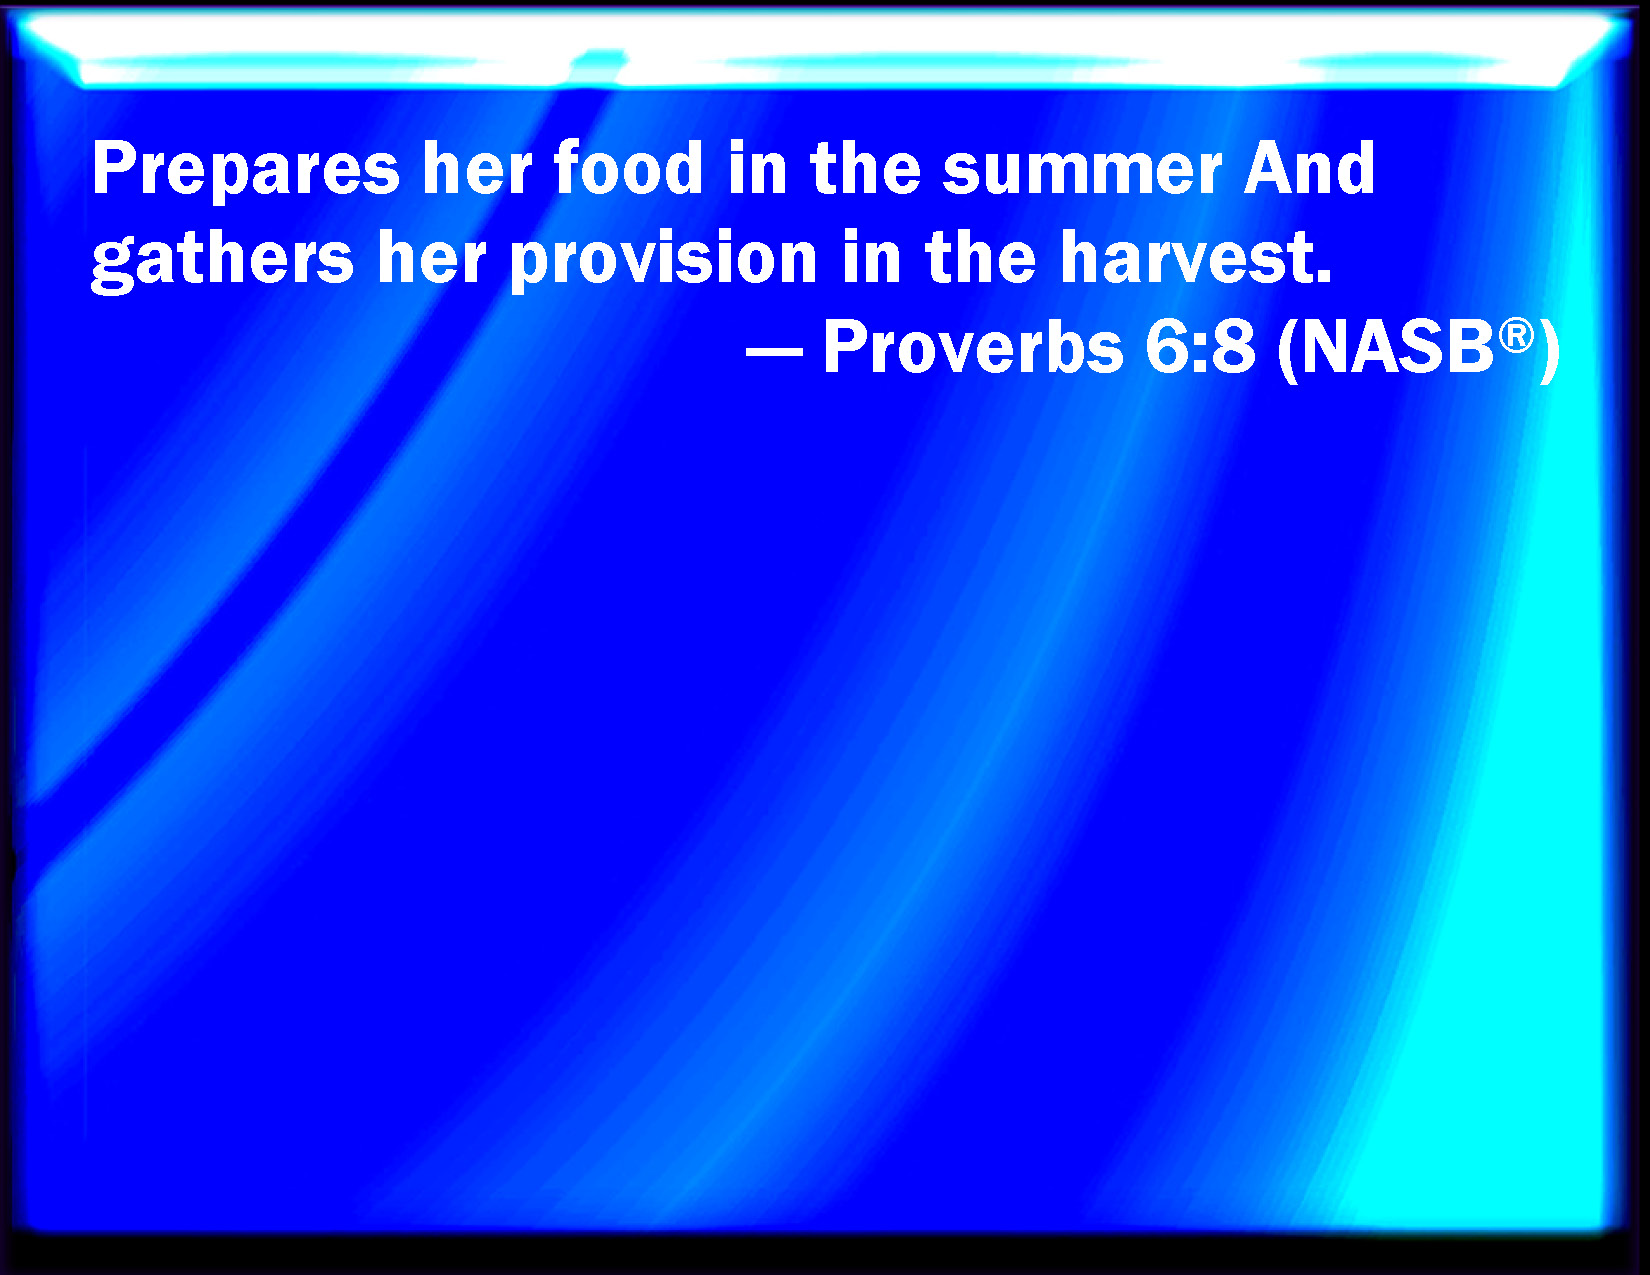 Proverbs 6:8 Provides her meat in the summer, and gathers